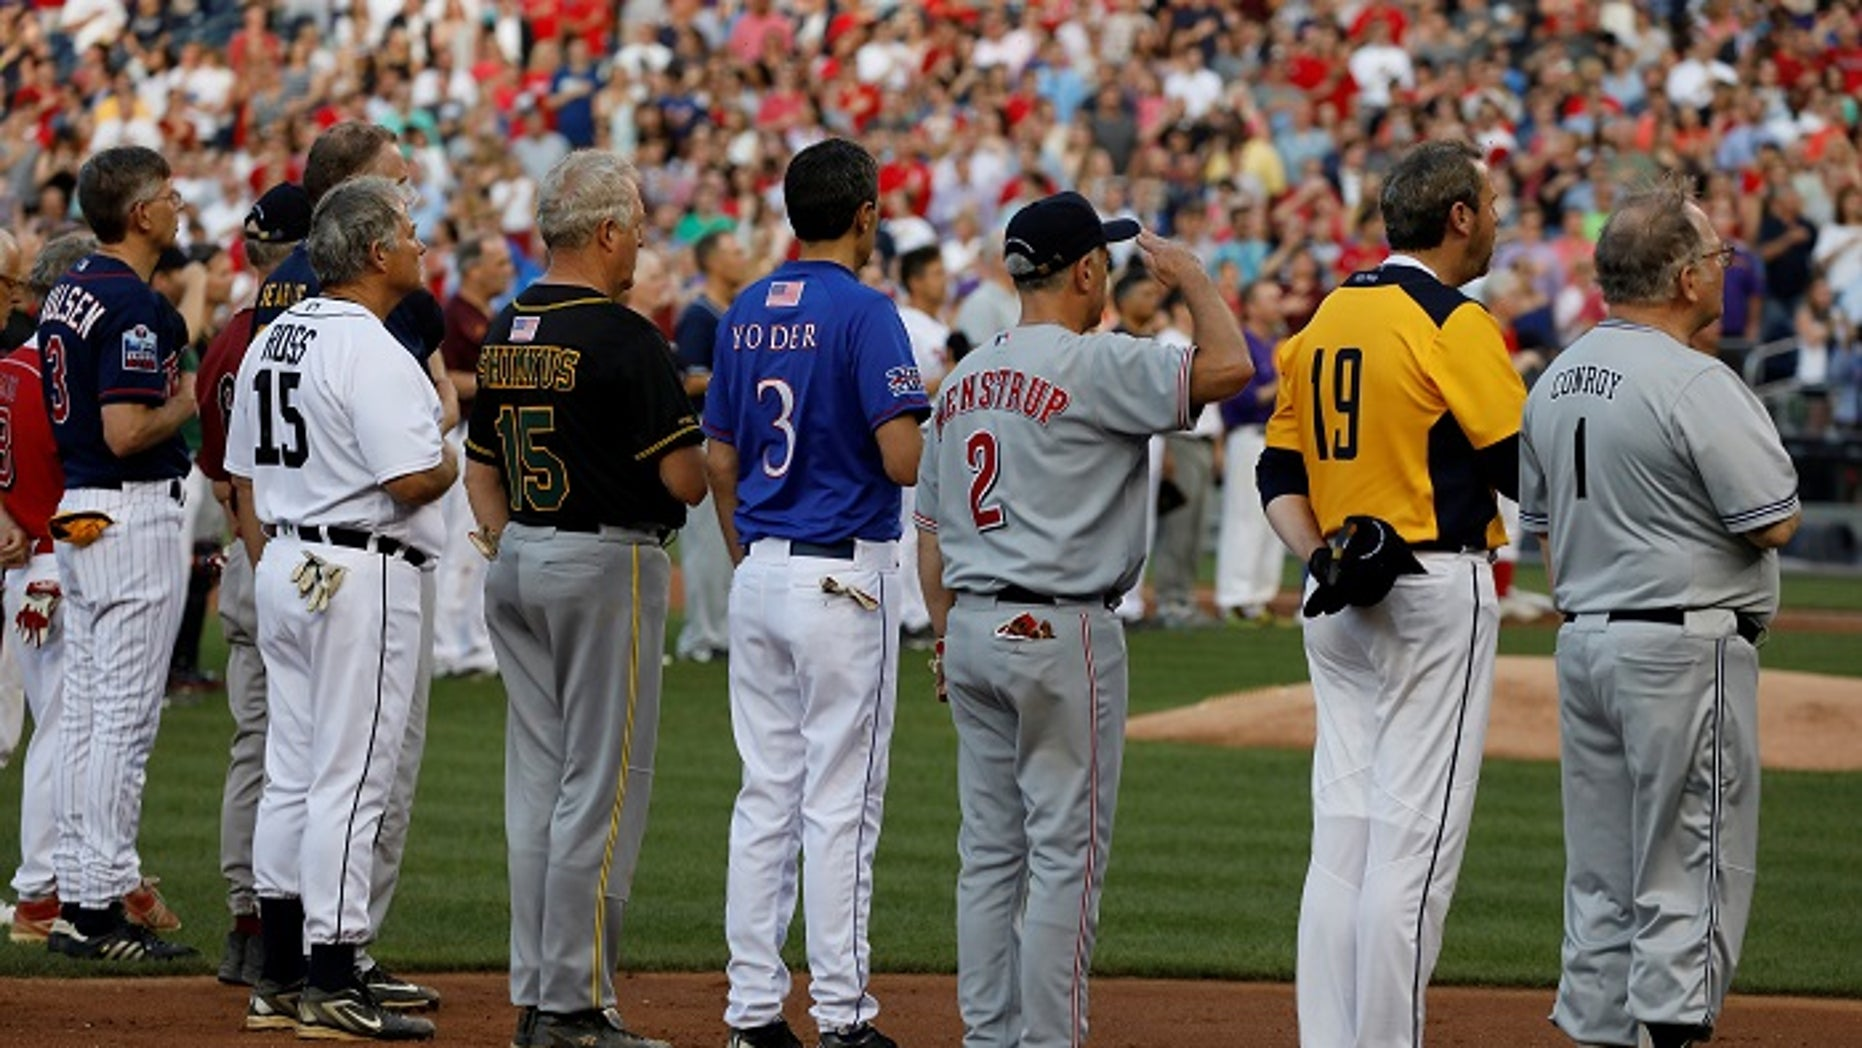 Members of the Congressional baseball teams stand for the National Anthem during the Congressional Baseball Game at Nationals Park in Washington, U.S., June 15, 2017.